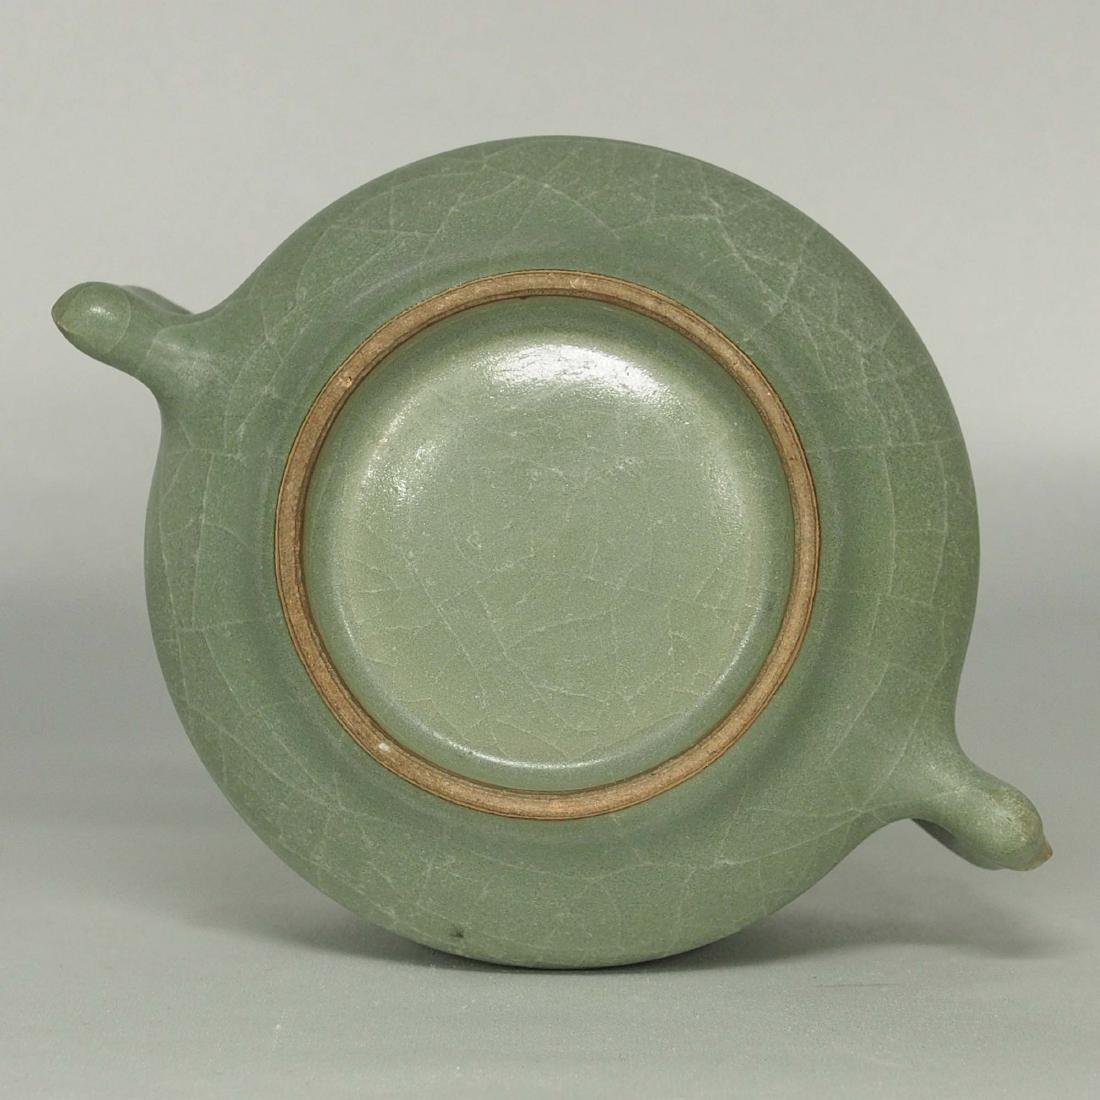 Longquan Crackled Censer with Handle, Song Dynasty - 6